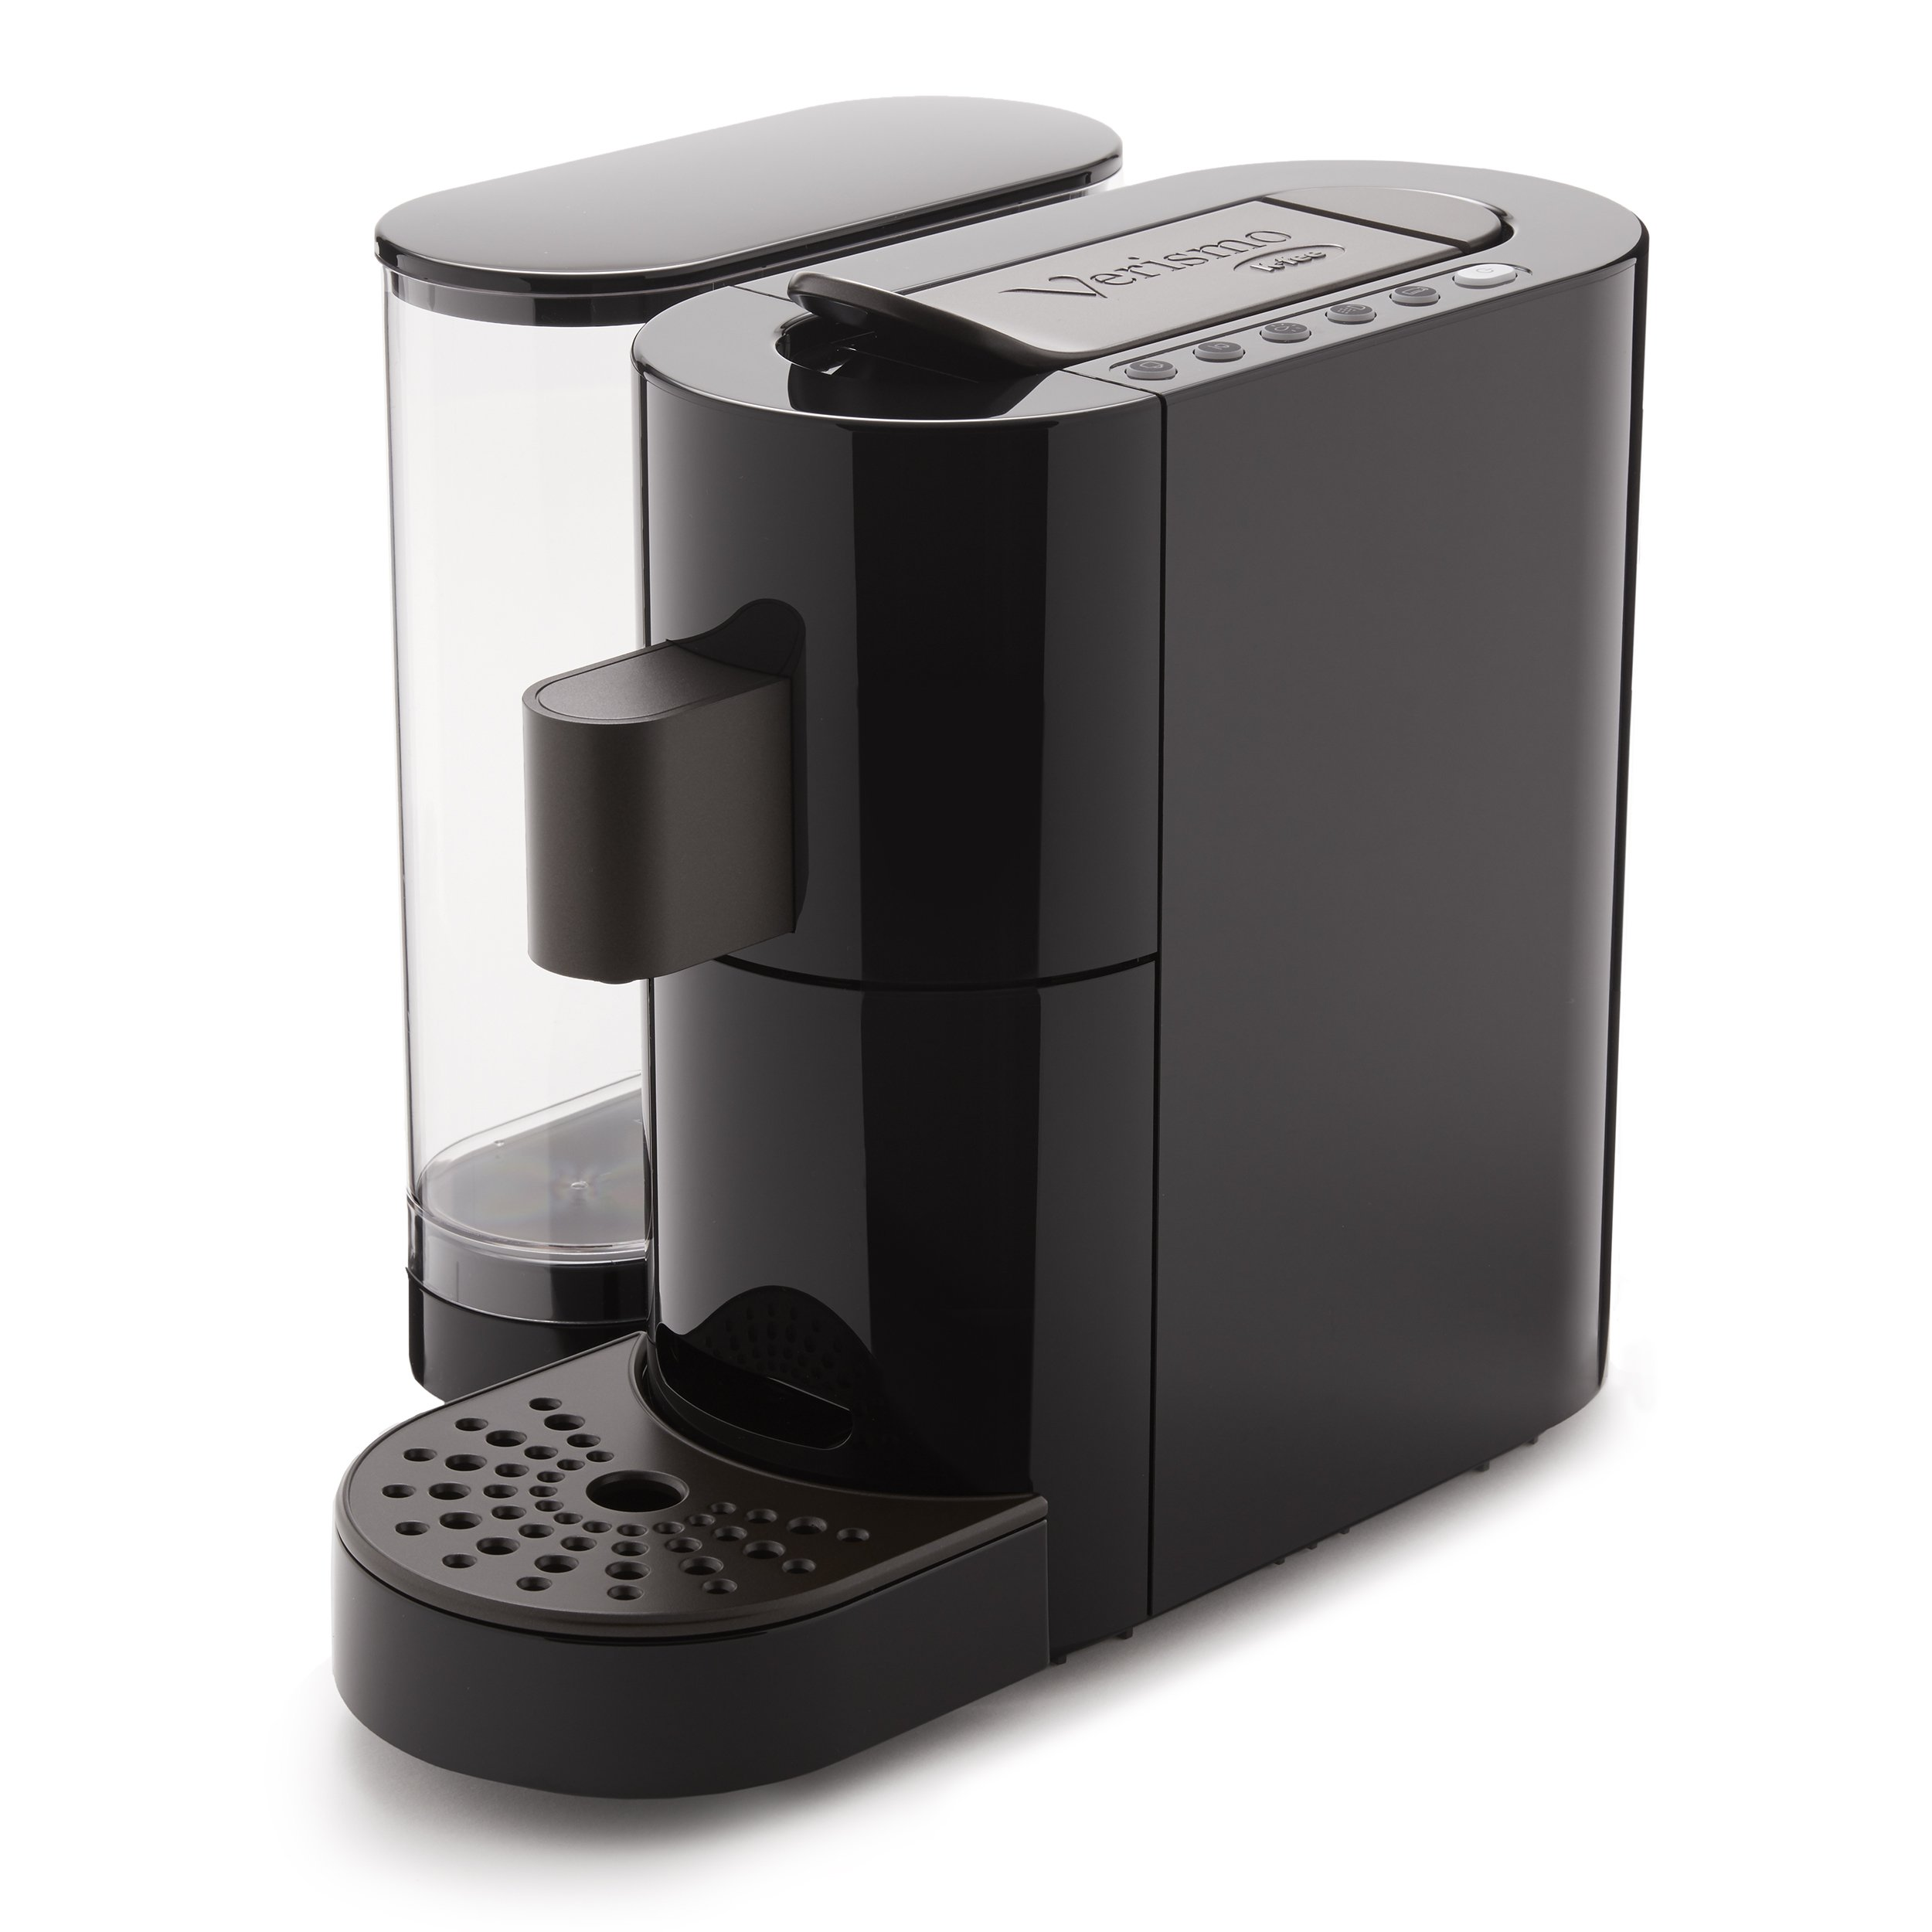 Starbucks Verismo System, Coffee and Espresso Single Serve Brewer, Black by Starbucks